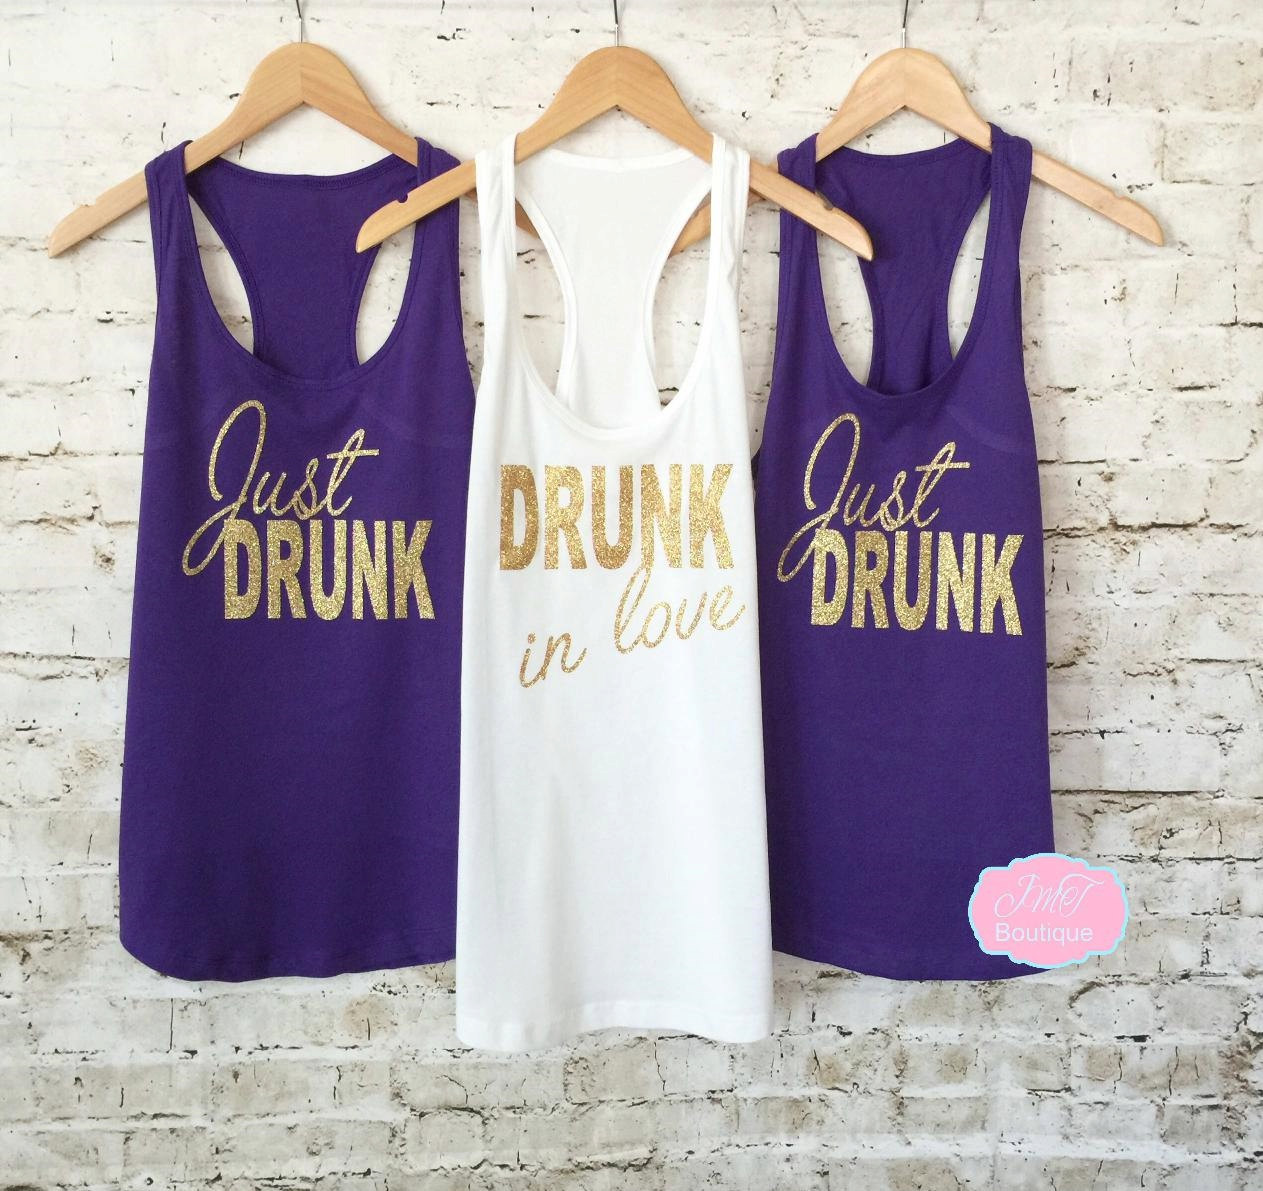 bridesmaid tank tops bridesmaid tanks. just drunk tank top. drunk in love tank. bachelorette  shirts. OODPTUY